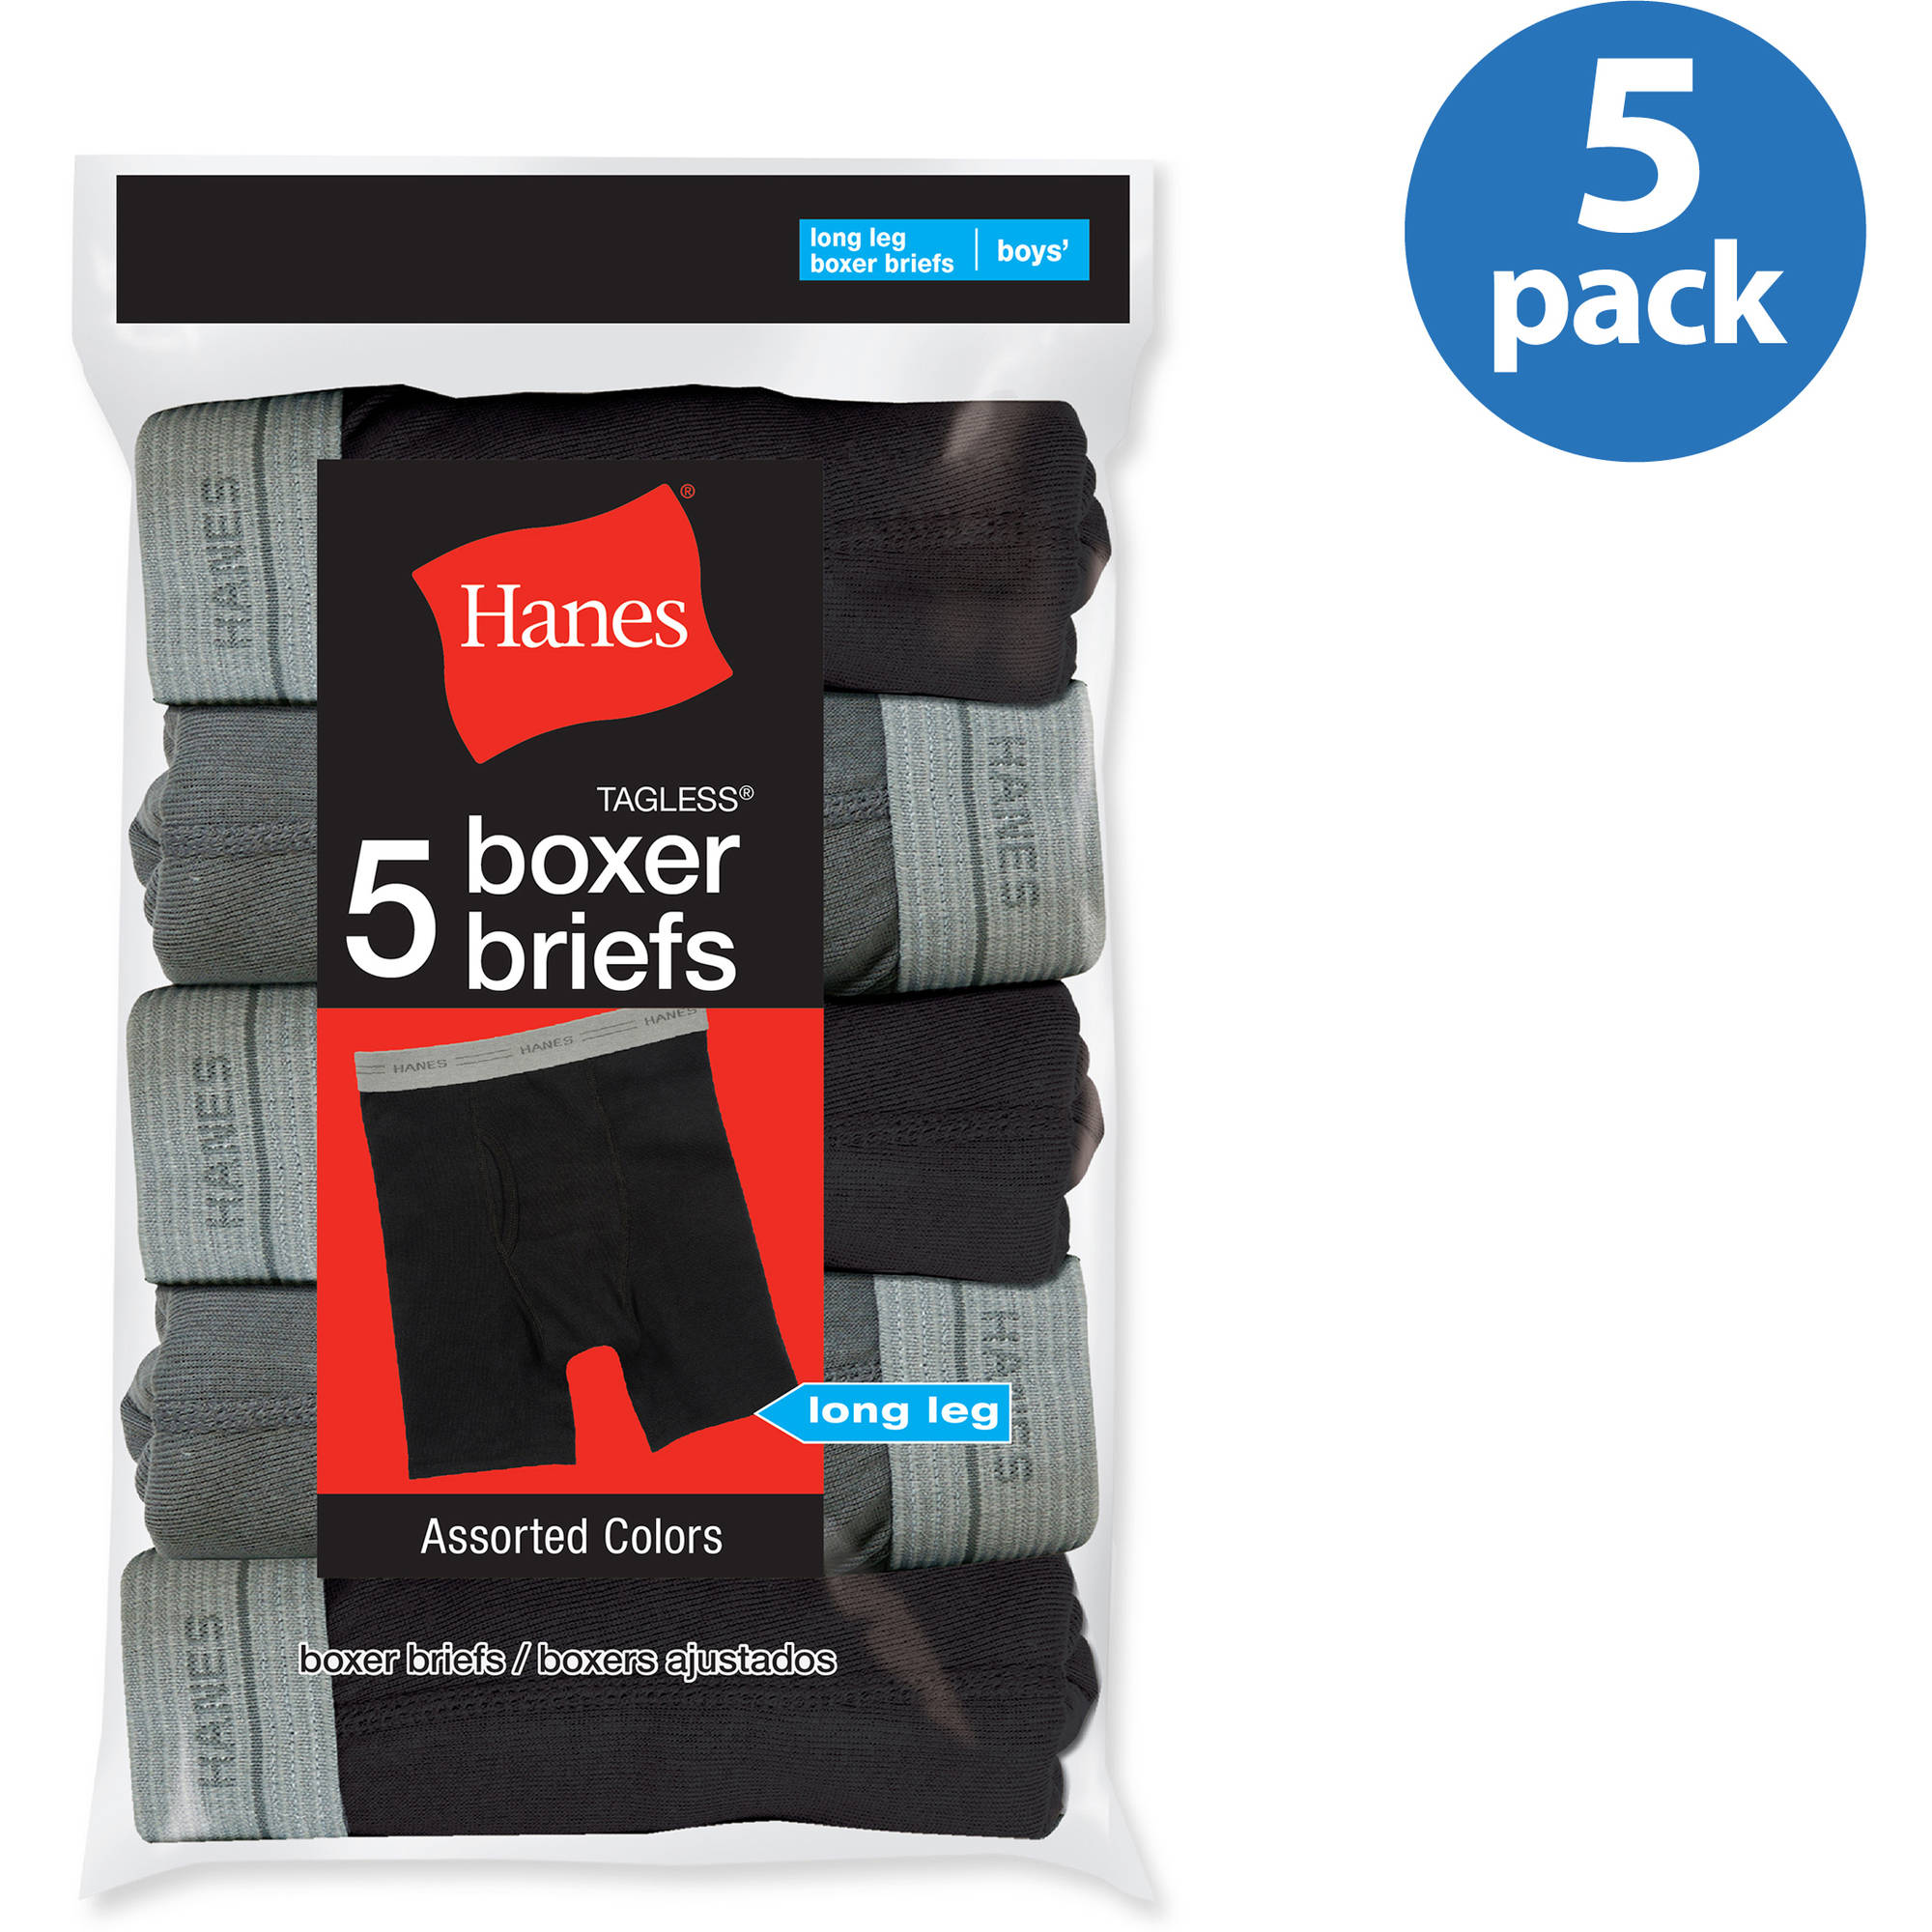 Hanes Boys Long Leg Boxer Brief 5 Pack